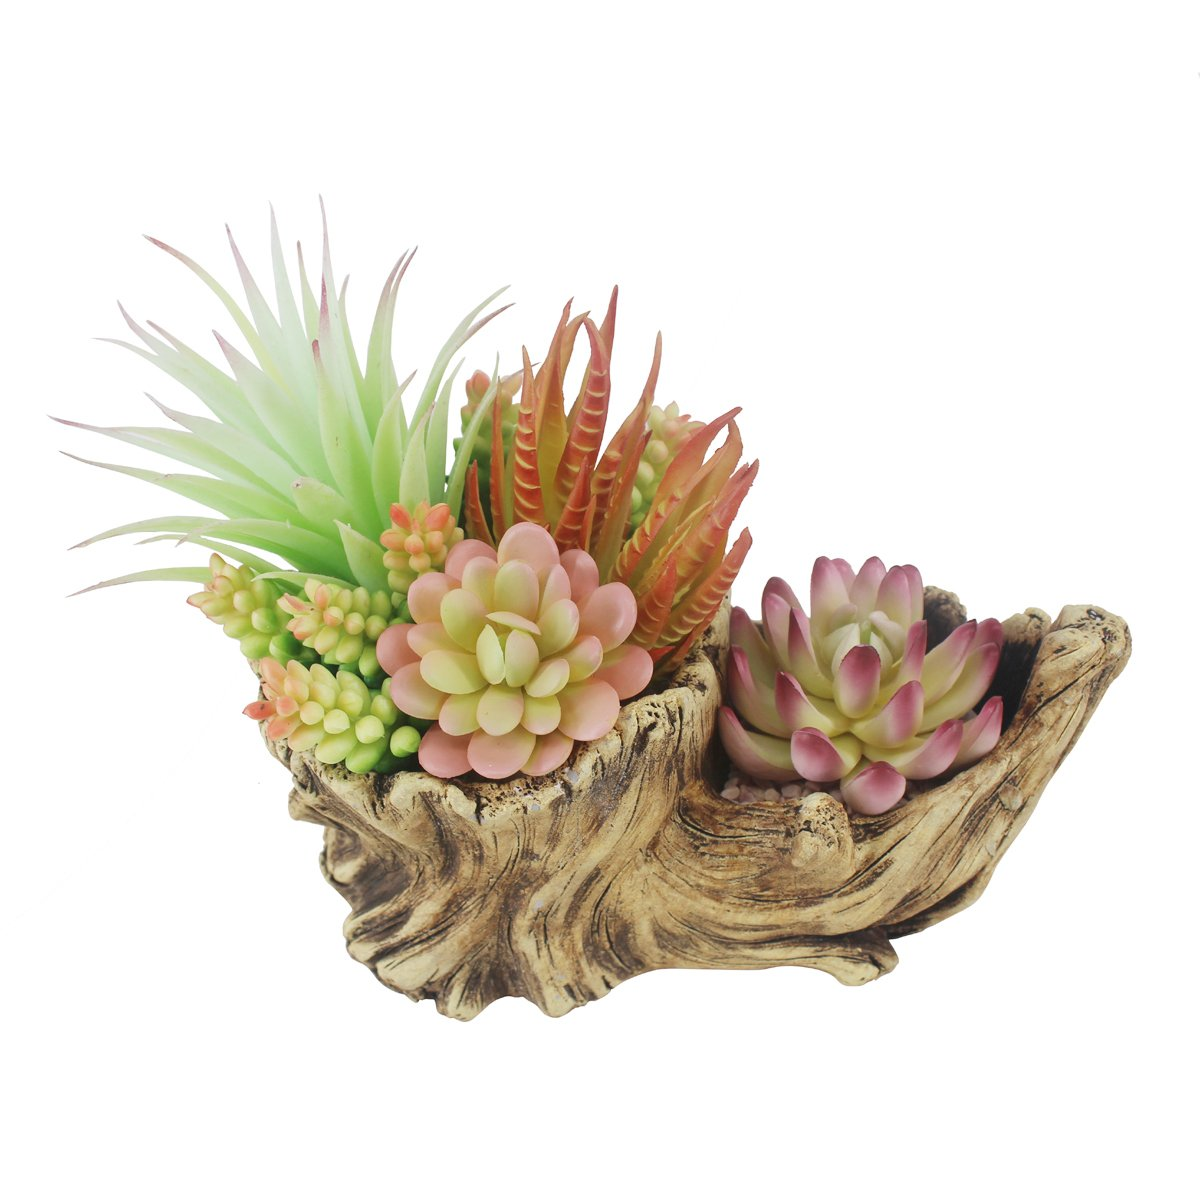 Greatflower Fake Resin Driftwood Stump Pot with Artificial Succulent Arrangement by Greatflower (Image #4)